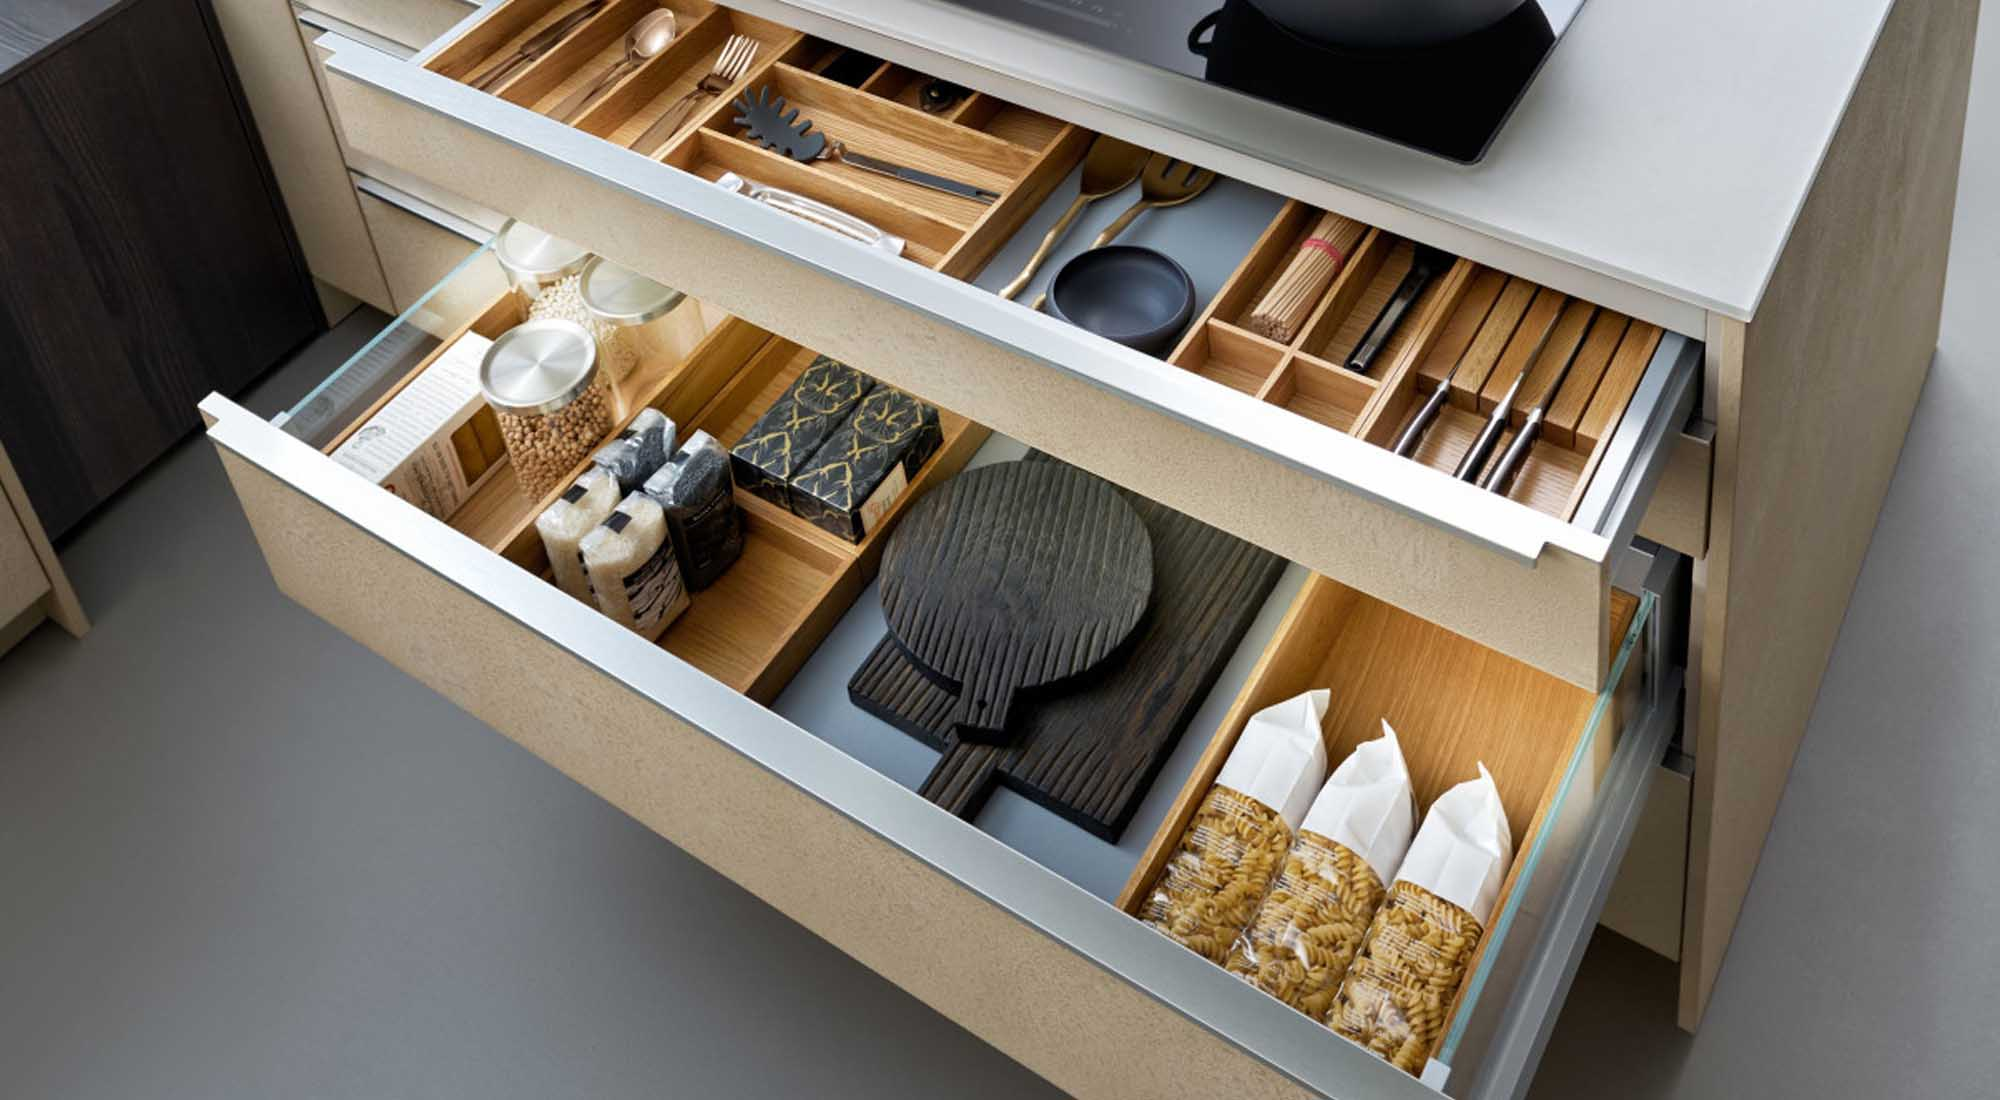 Designer kitchen drawers by Hubble